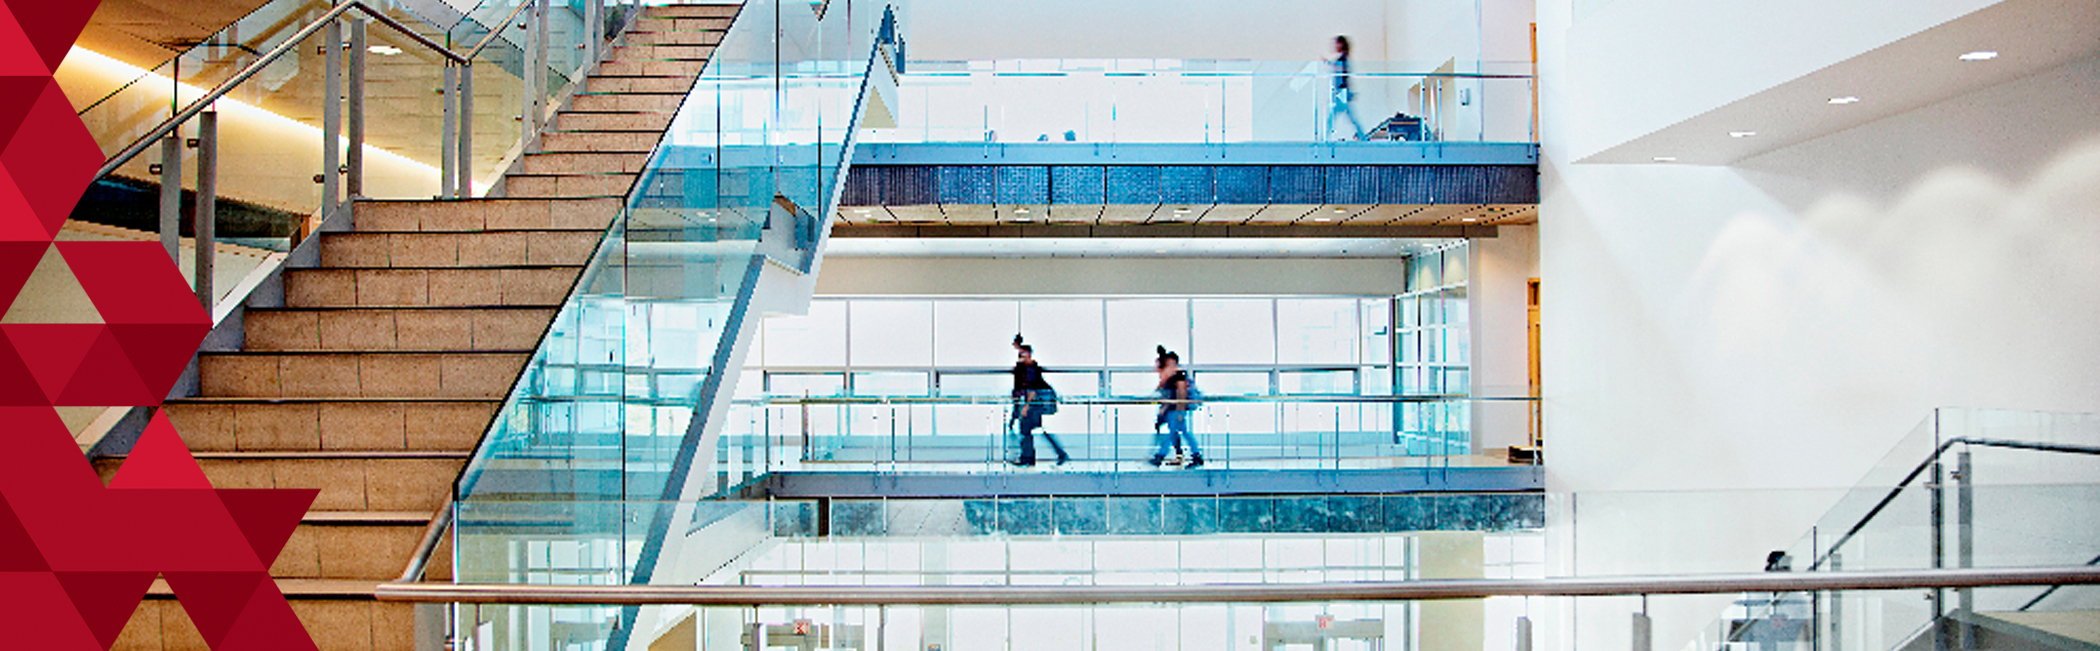 Students Walking through the TEL building